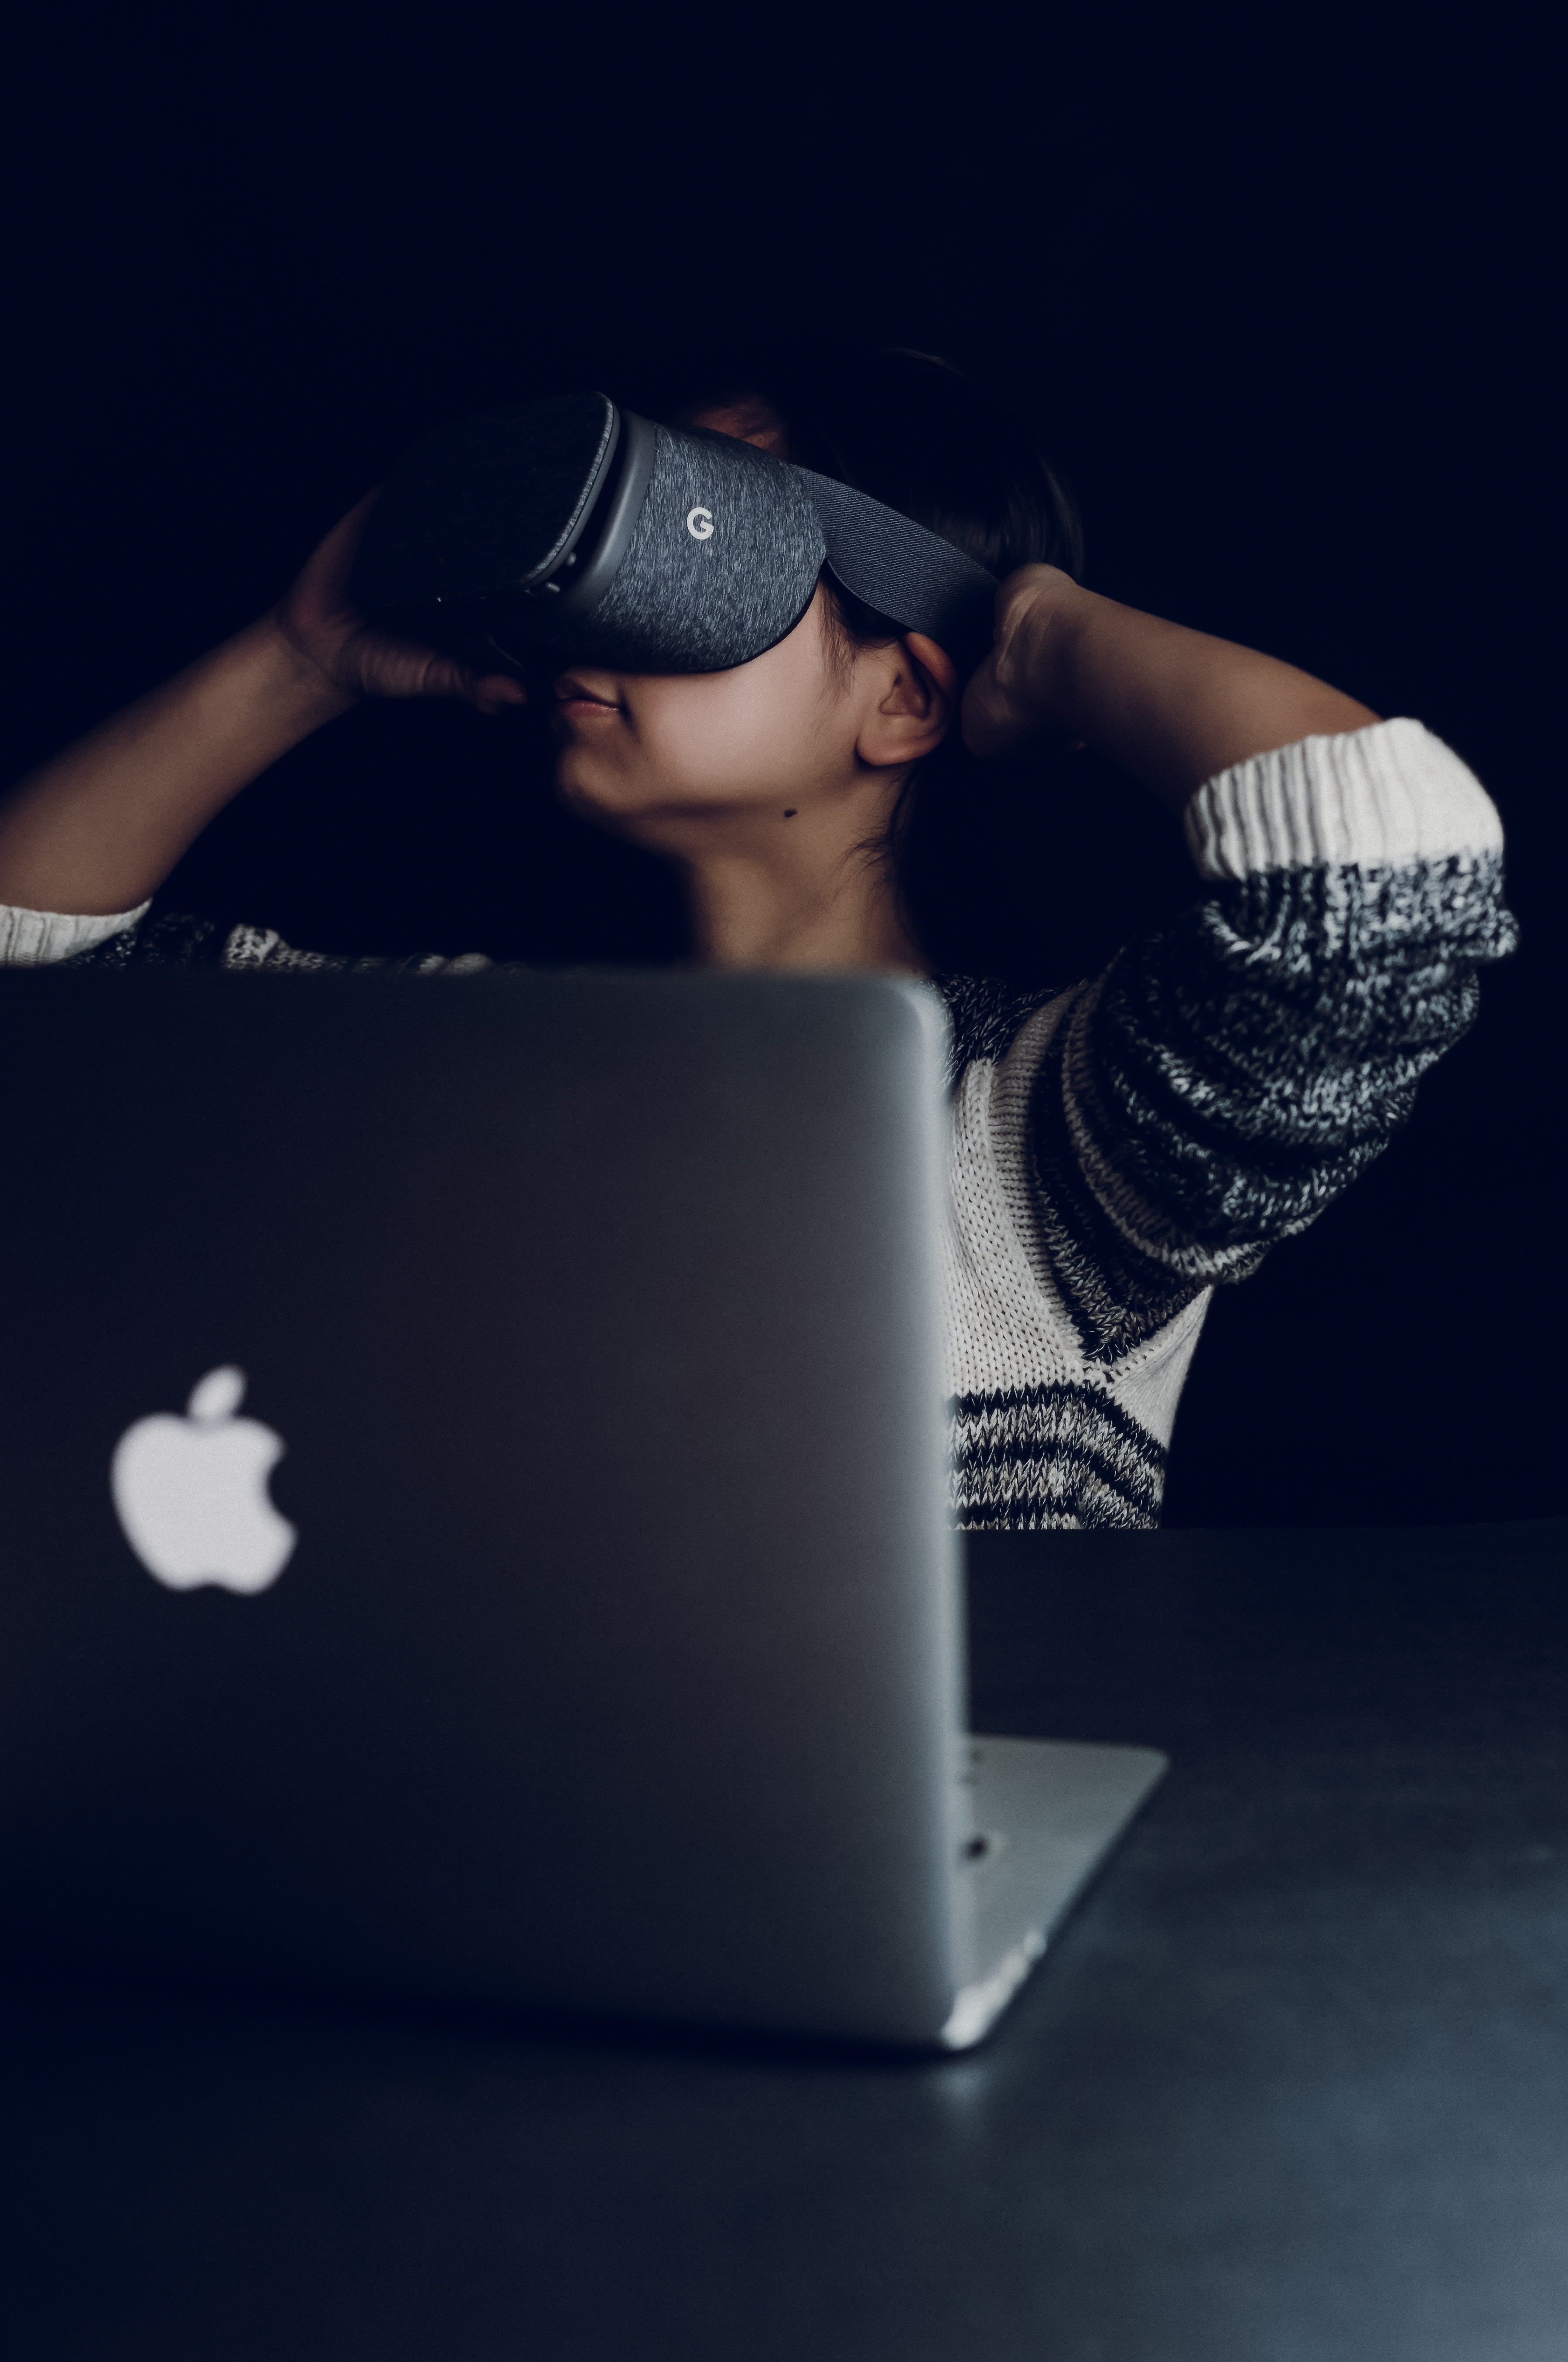 Lady with virtual reality viewer in front of Apple laptop computer.